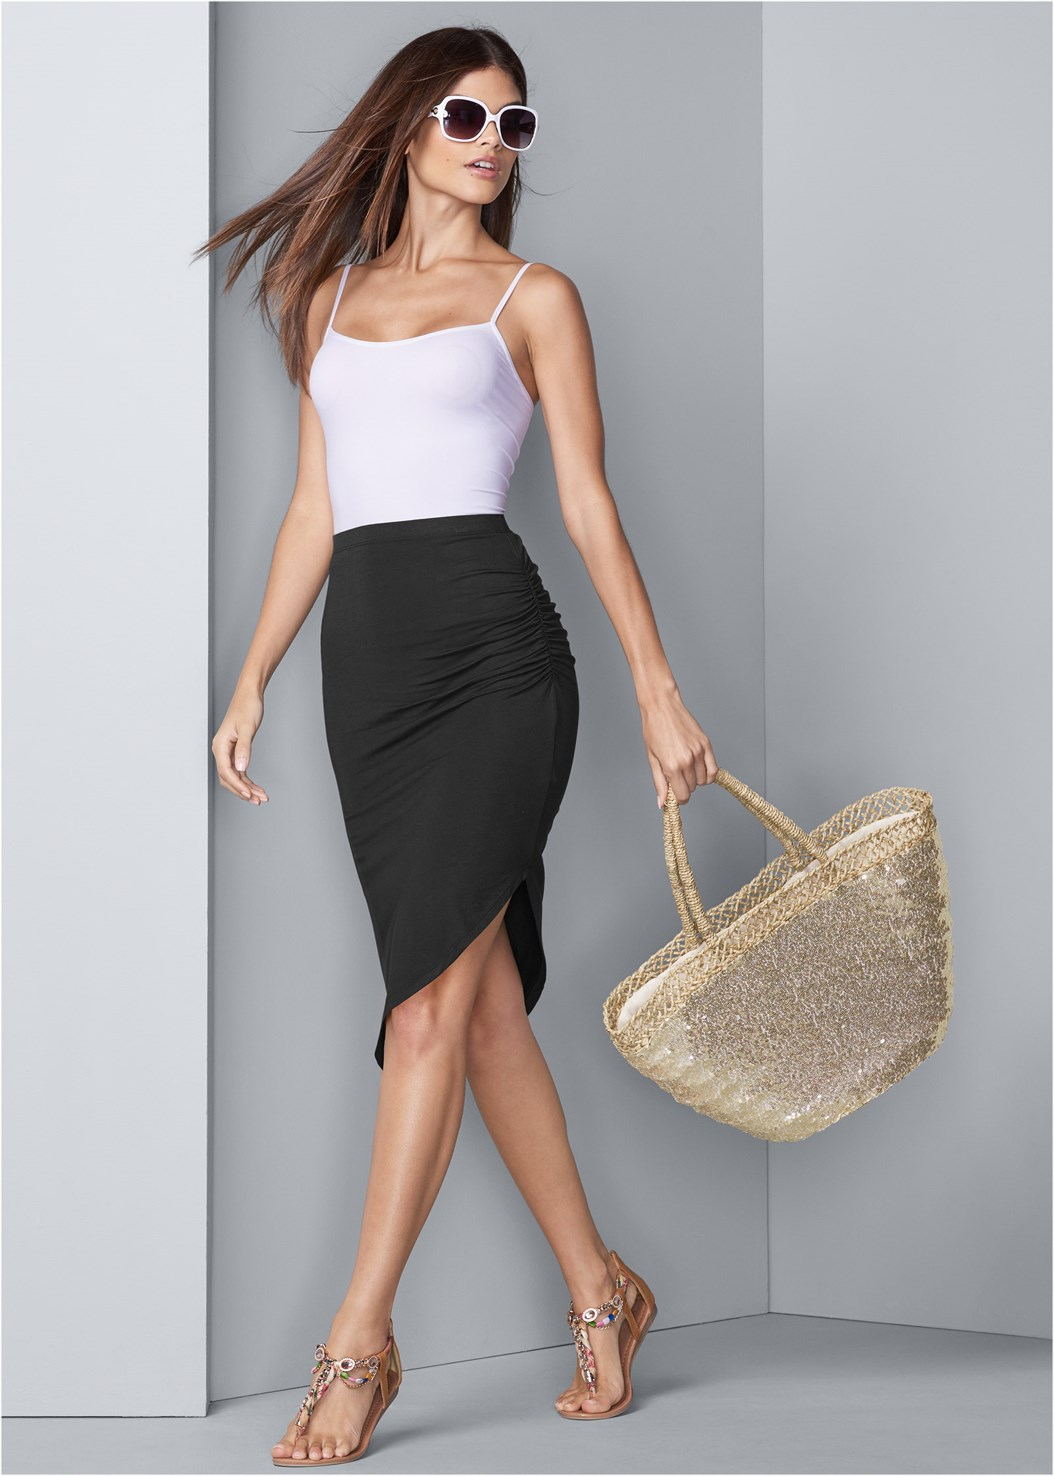 Easy Midi Skirt,Basic Cami Two Pack,Embellished Rope Sandals,Dainty Tassel Earrings,Long Chain Pendant Necklace,Steve Madden Sunglasses